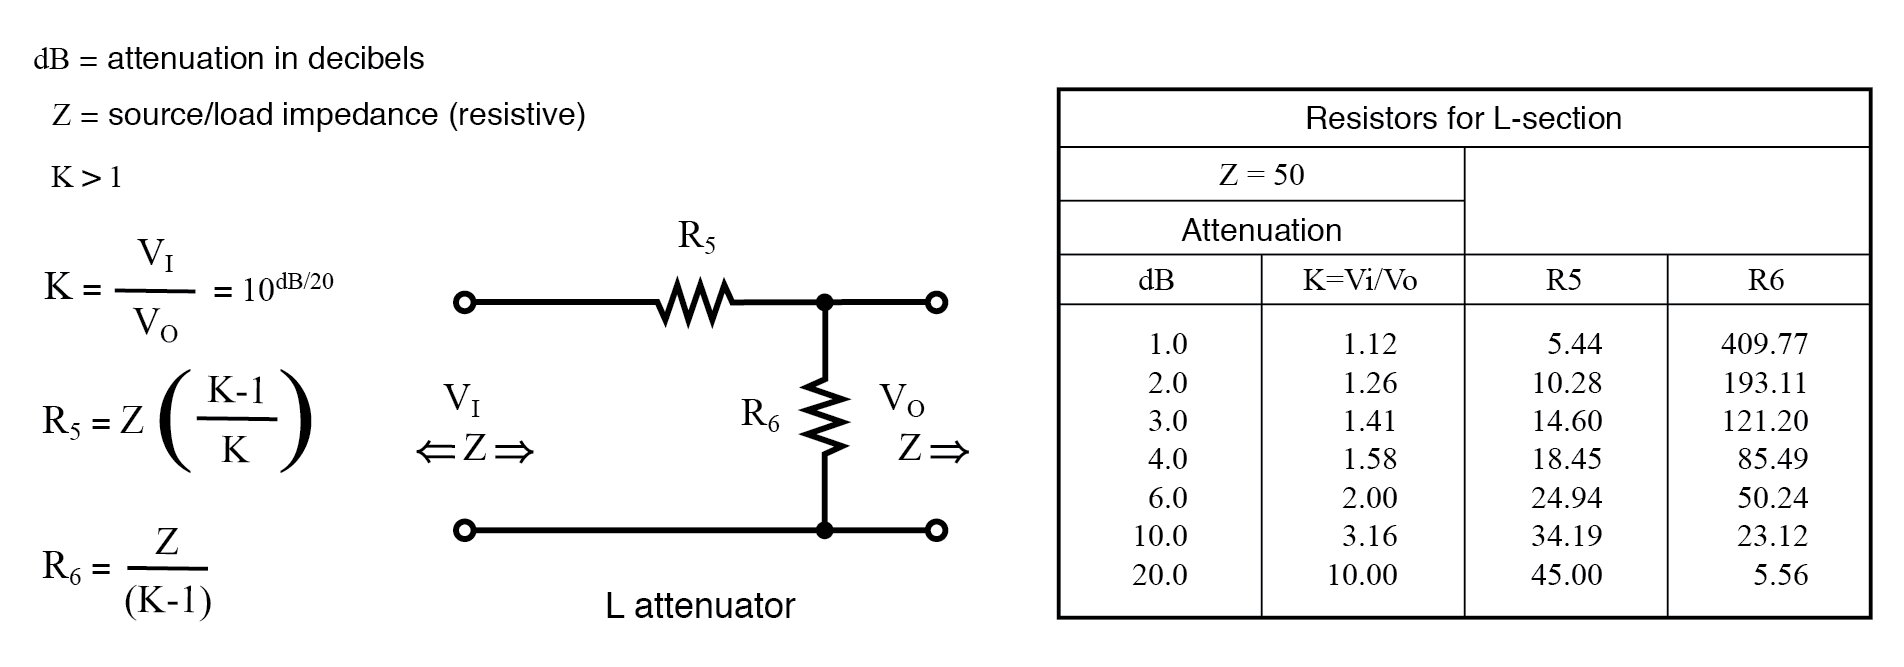 L-section attenuator table for 50 Ω source and load impedance.